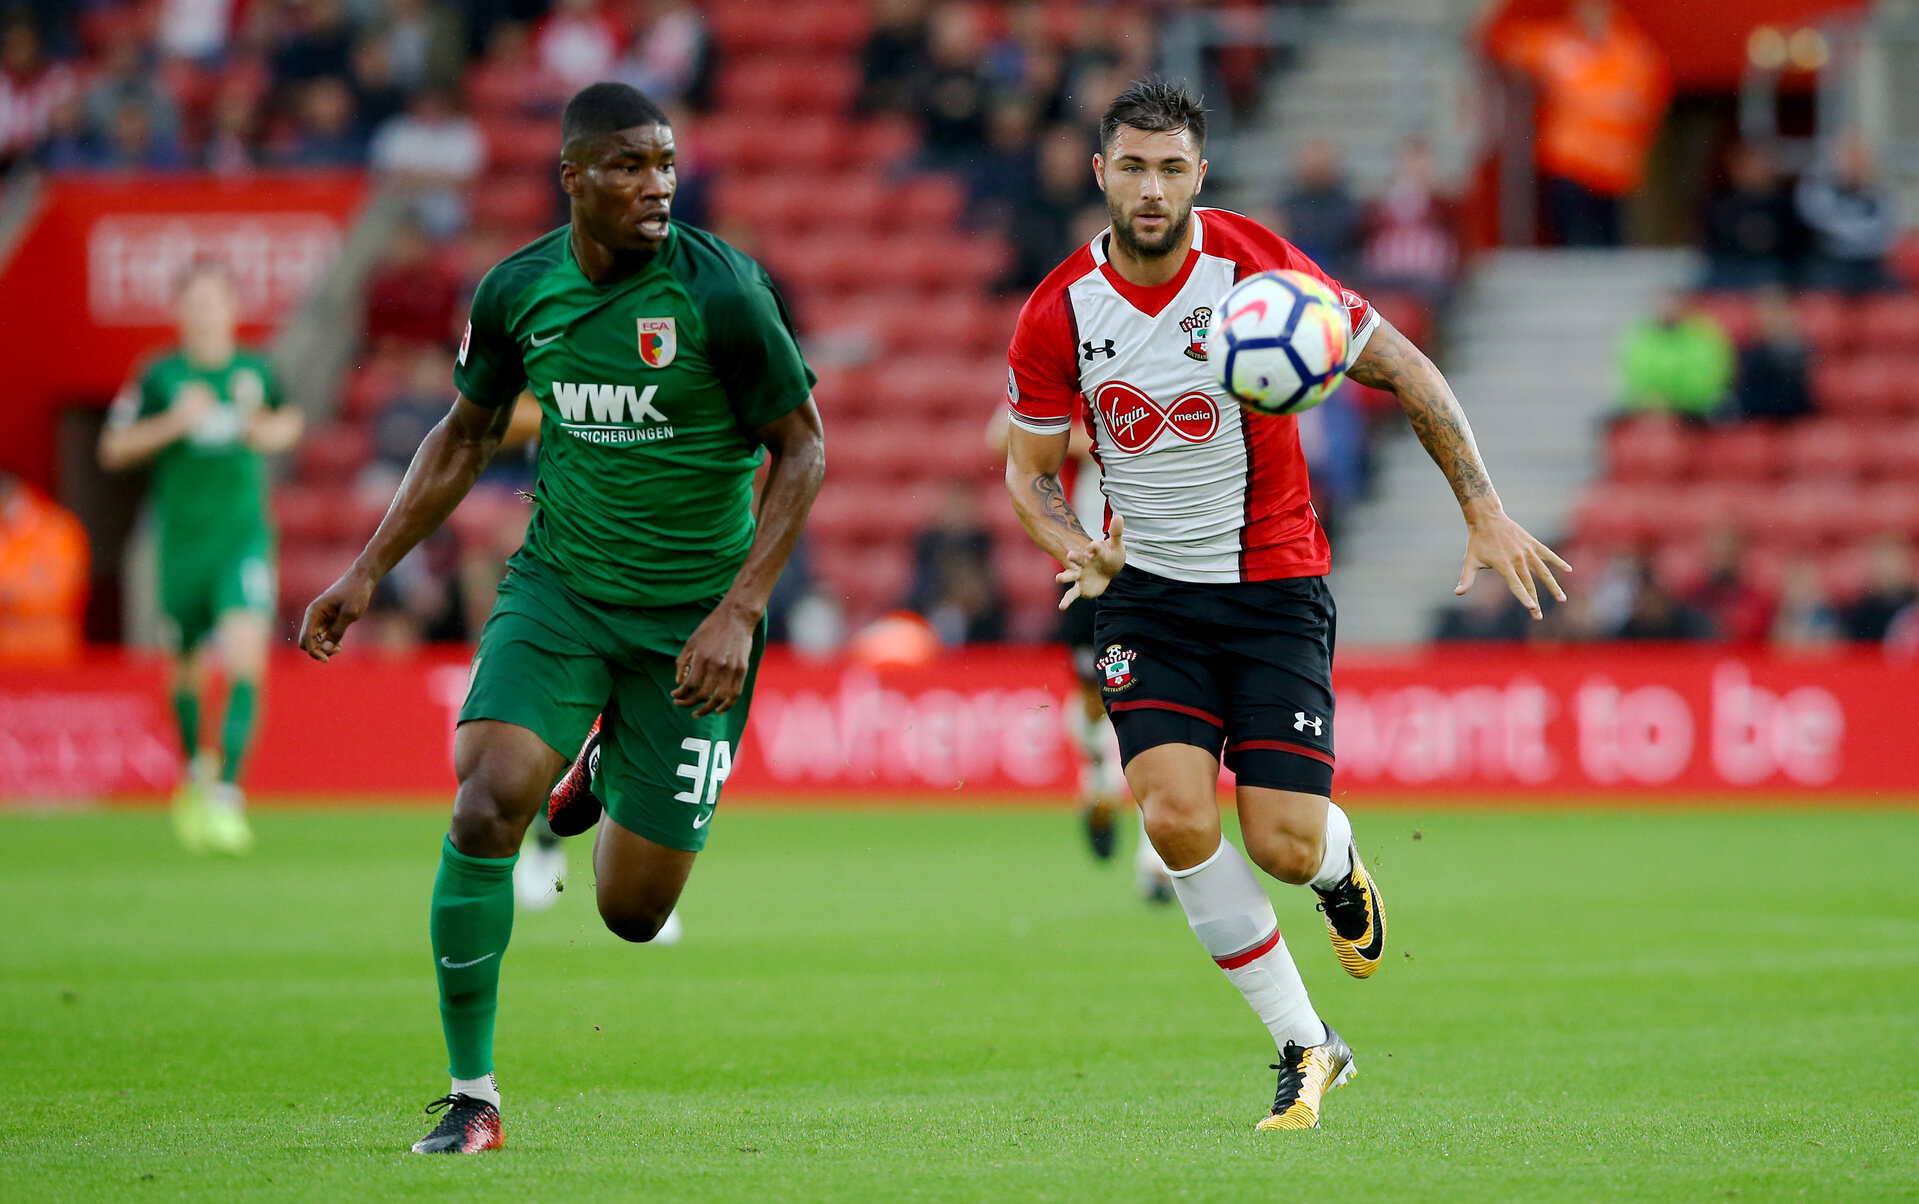 SOUTHAMPTON, ENGLAND - AUGUST 02: Kevin Danso(left) and Charlie Austin(right) during the pre-season friendly between Southampton FC and Augsburg at St Mary's Stadium on August 2, 2017 in Southampton, England. (Photo by Matt Watson/Southampton FC via Getty Images)